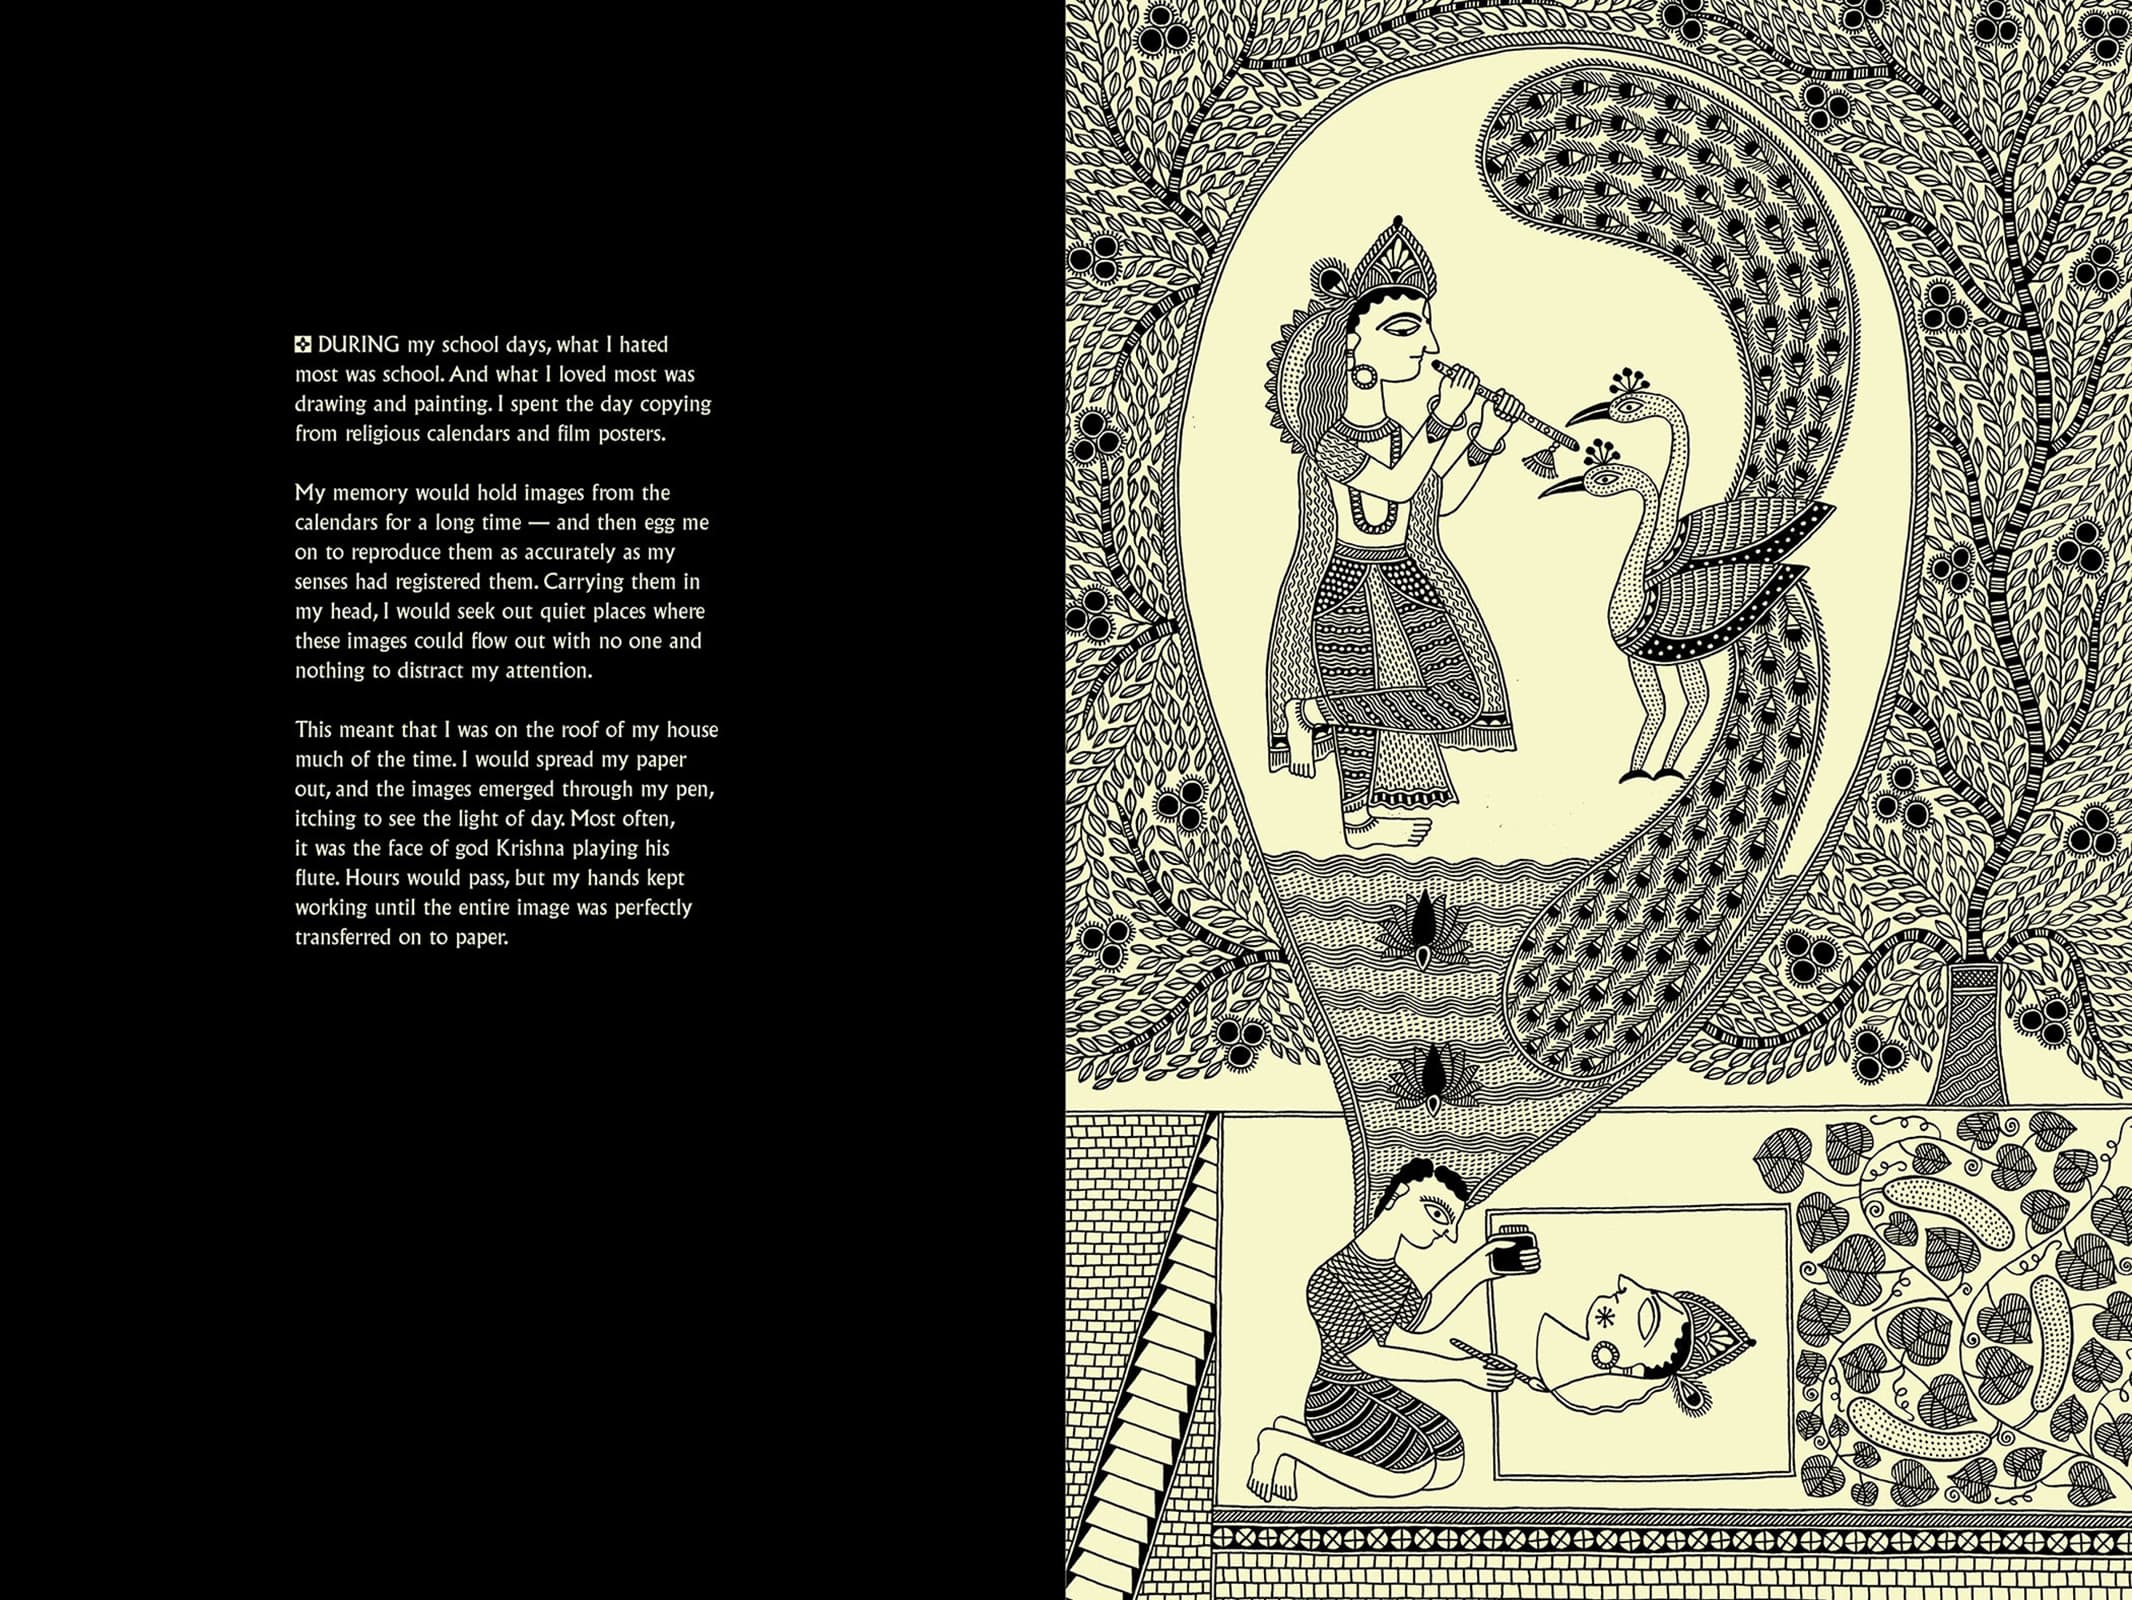 A page from 'Black: An Artist's Tribute', by Santosh Das Gupta (Image courtesy: Artisans').